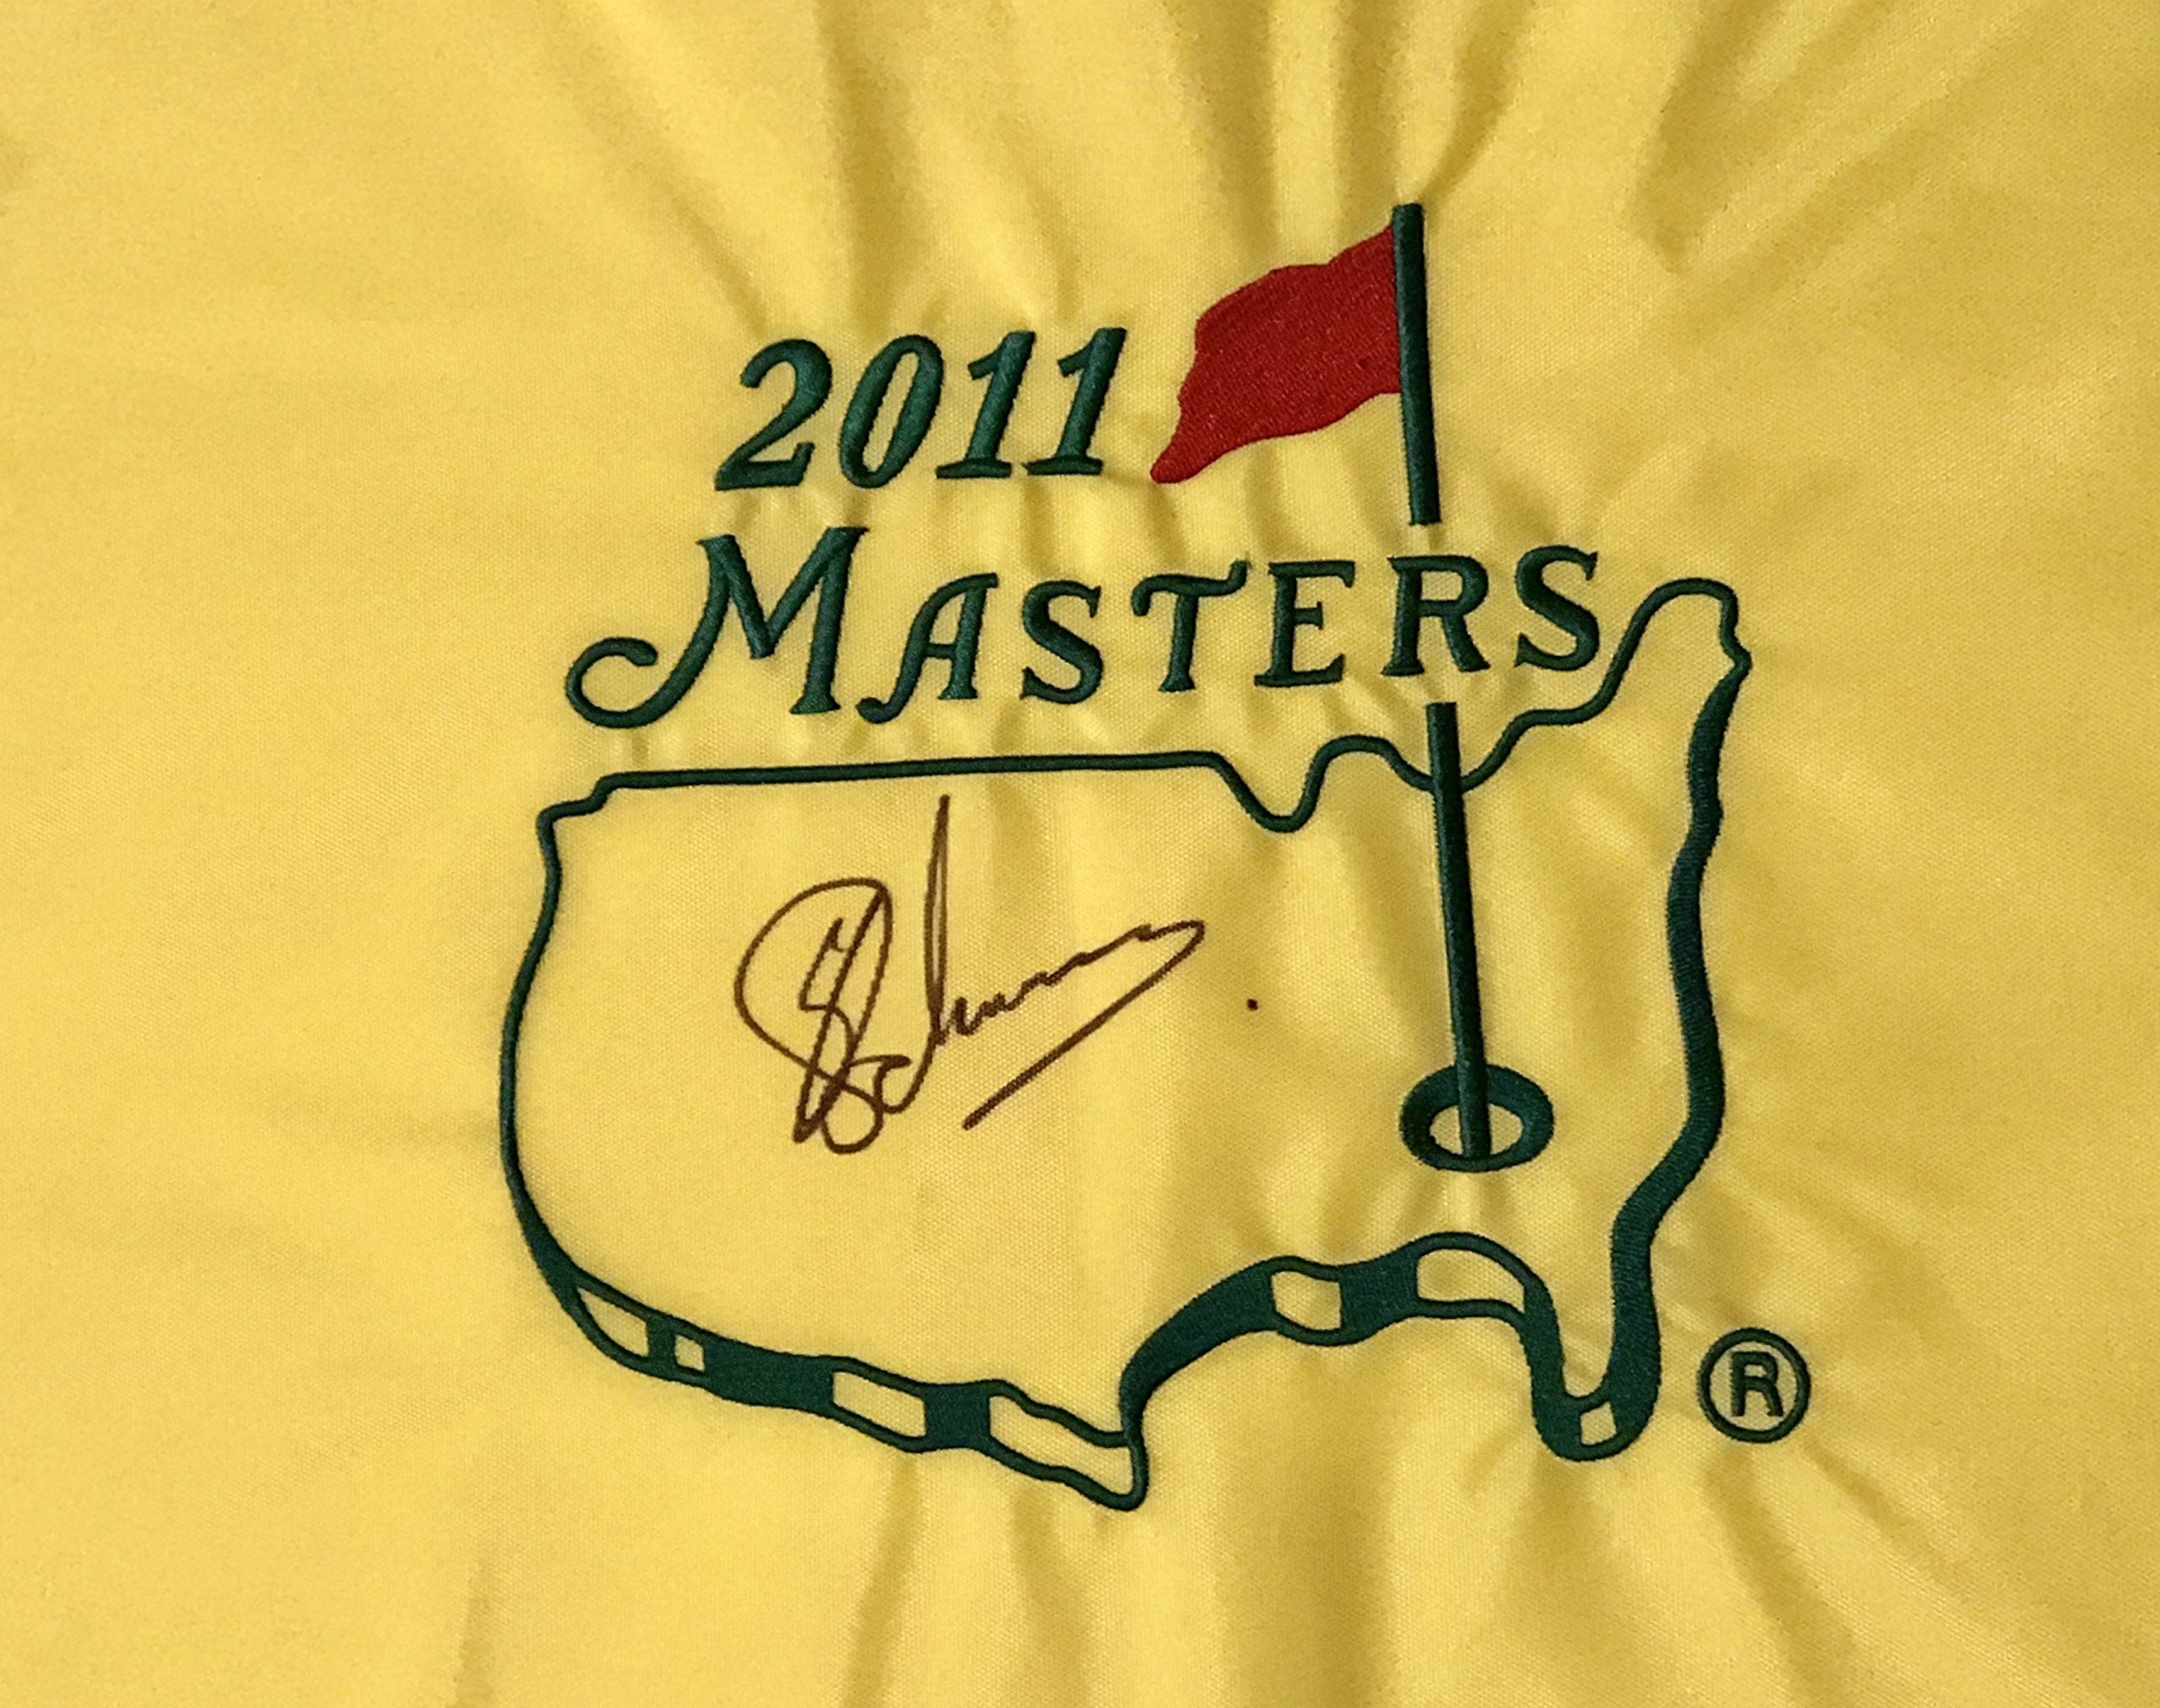 CHARL SCHWARTZEL Signed 2011 Masters Golf Tournament Pin Flag Pga